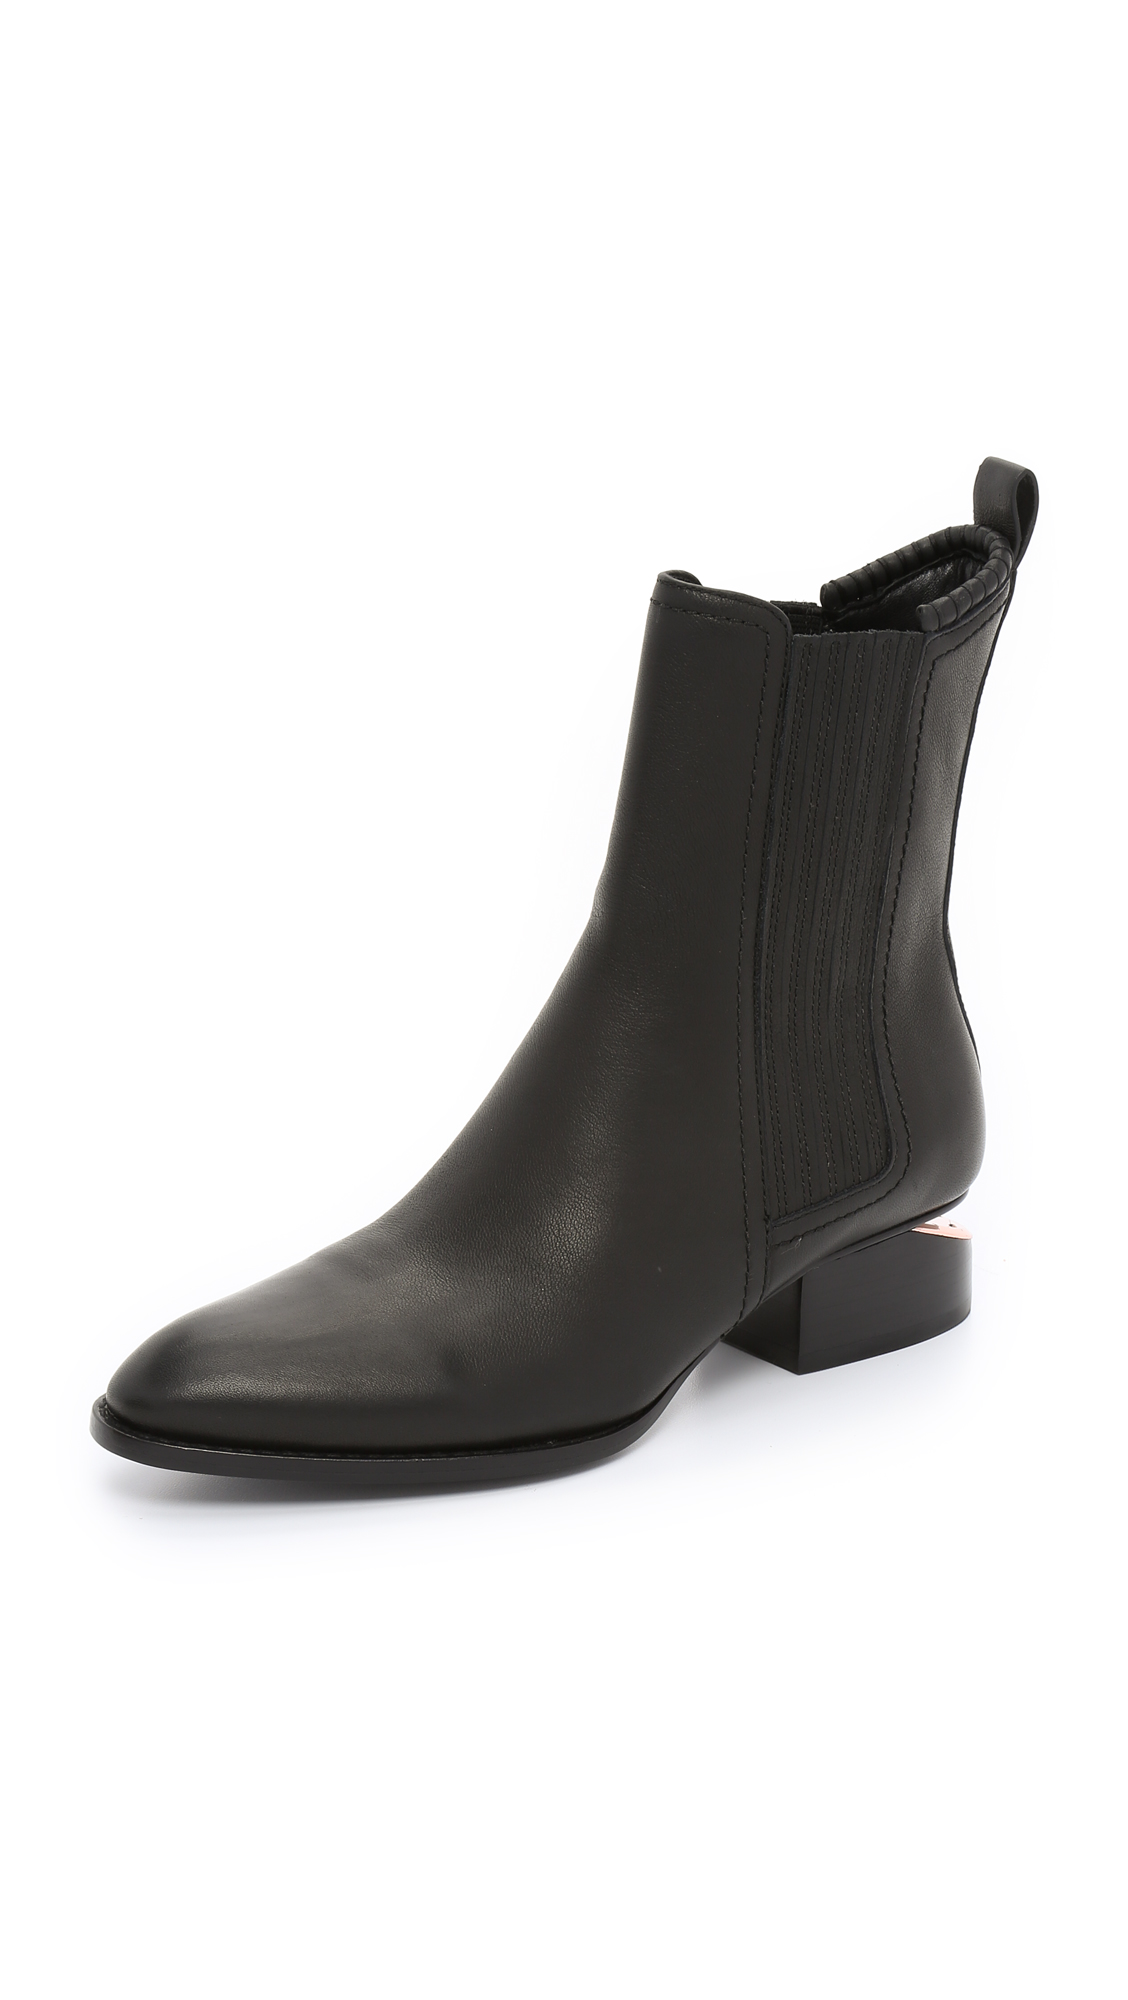 Photo of Alexander Wang Anouck Boots Black-Rose Gold - Alexander Wang online